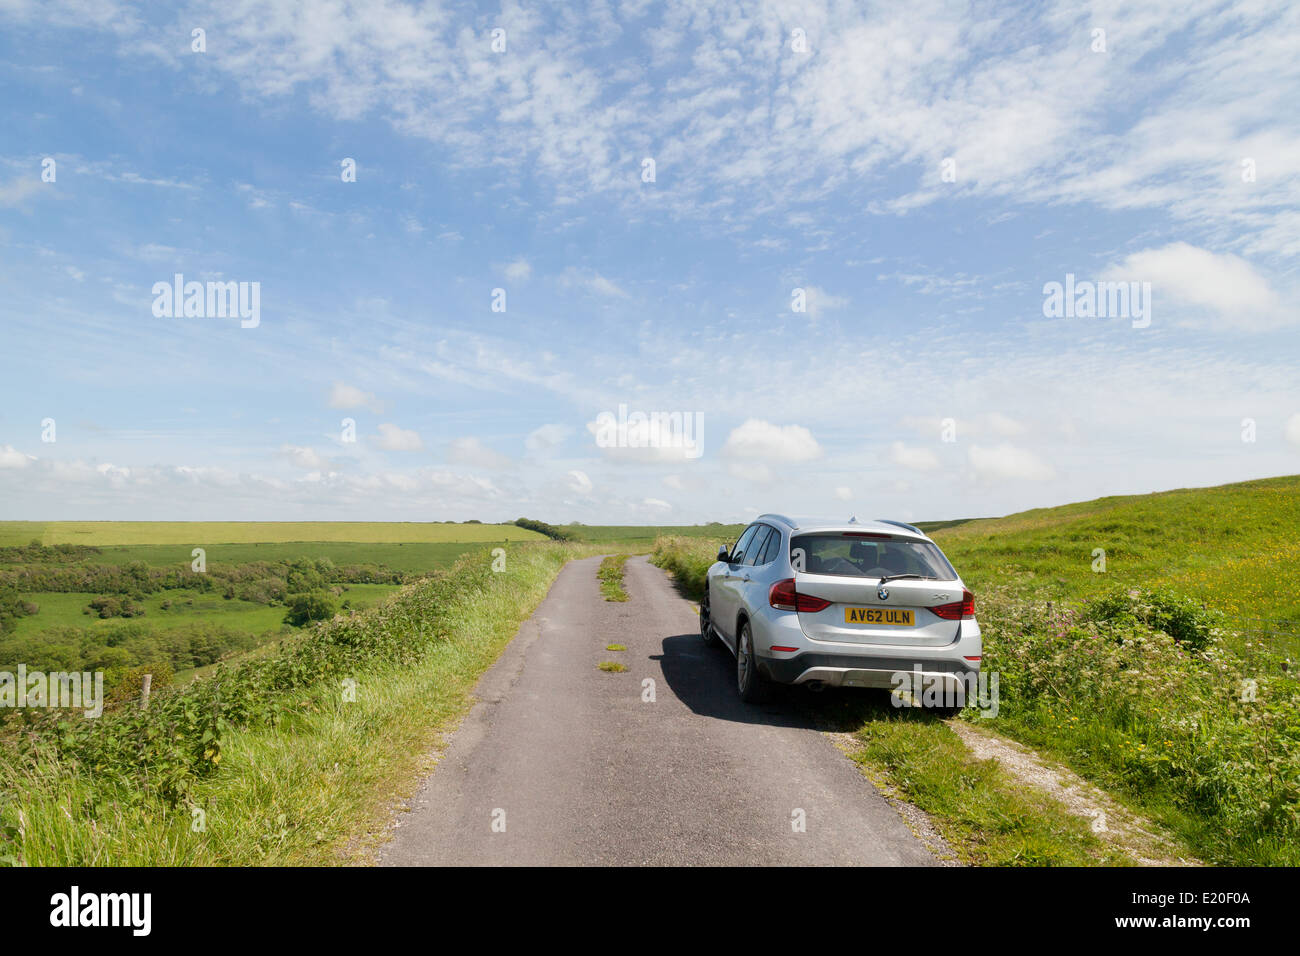 Car parked on a country road in summer, Dorset England, UK - Stock Image